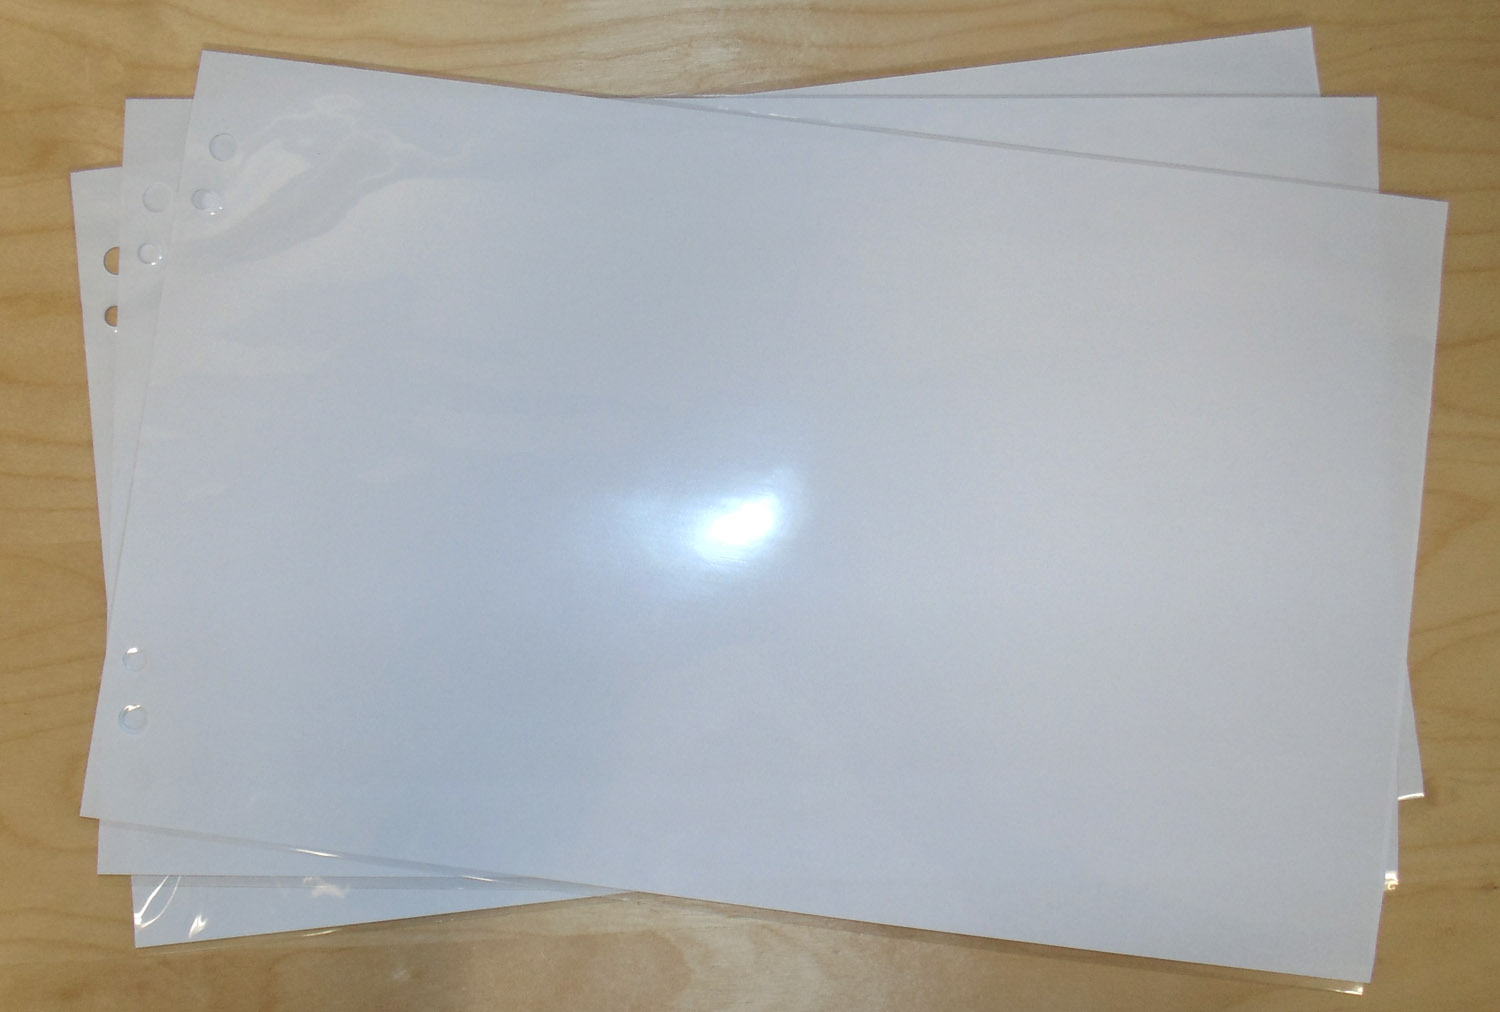 legal sheet protectors  8 2 x 14 u2033  med weight  box of 50